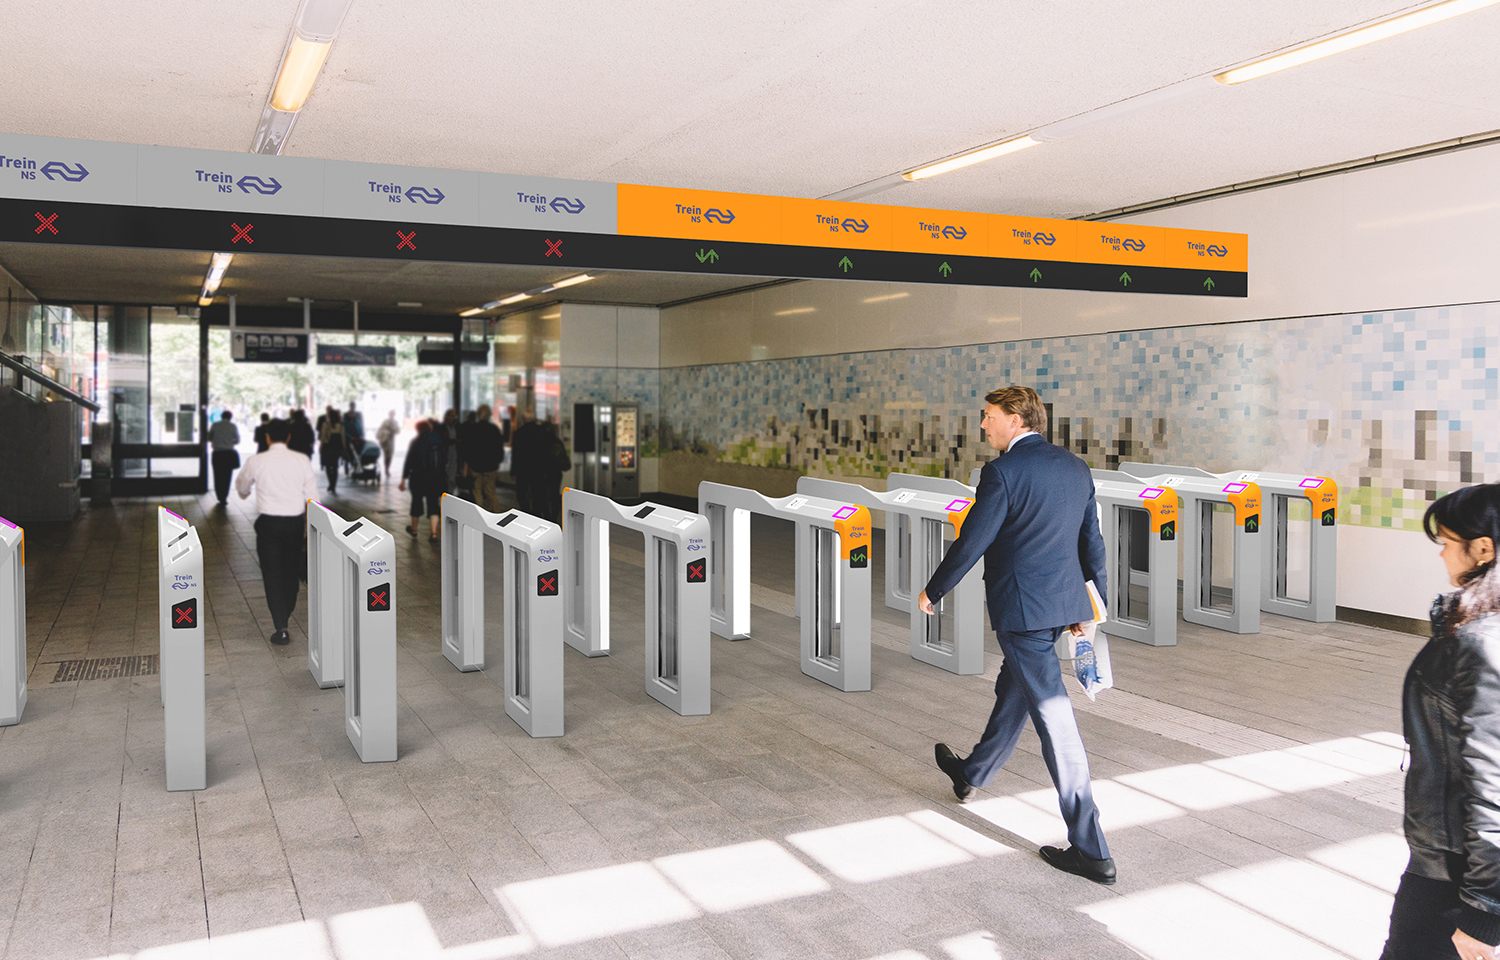 The proposed new user-centered design of the closed payment border for public transport